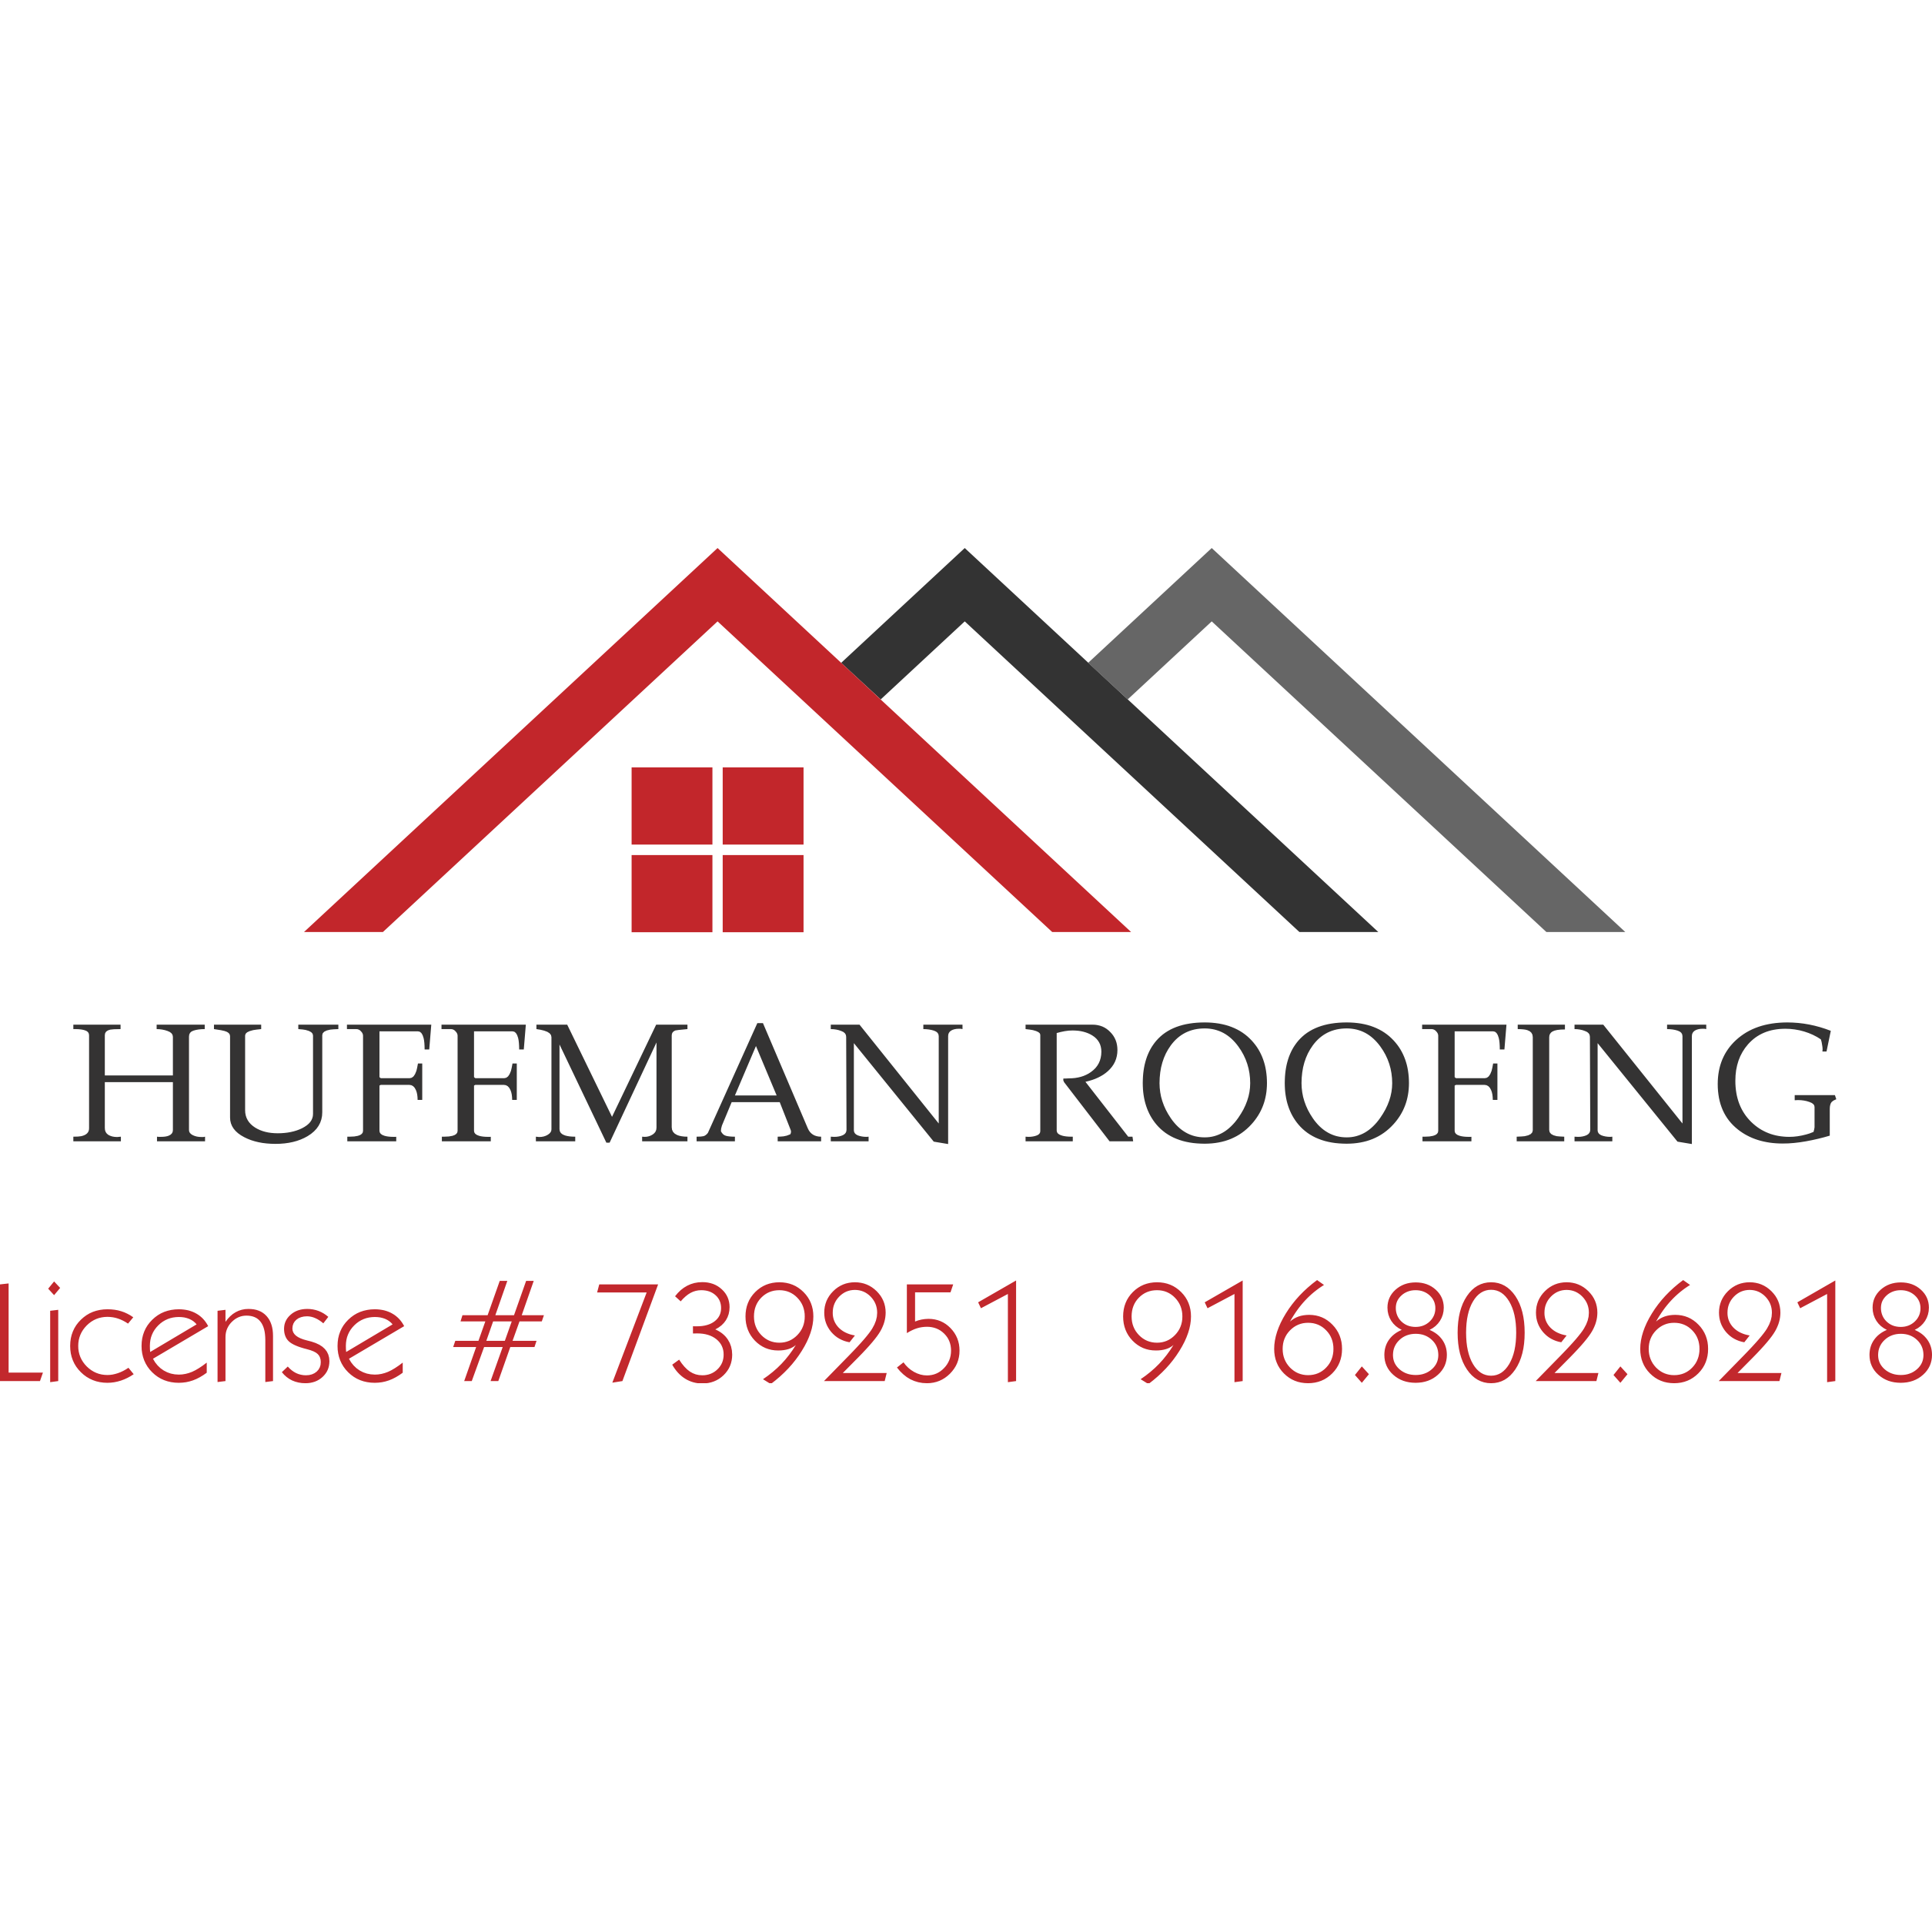 Huffman Roofing, Inc.